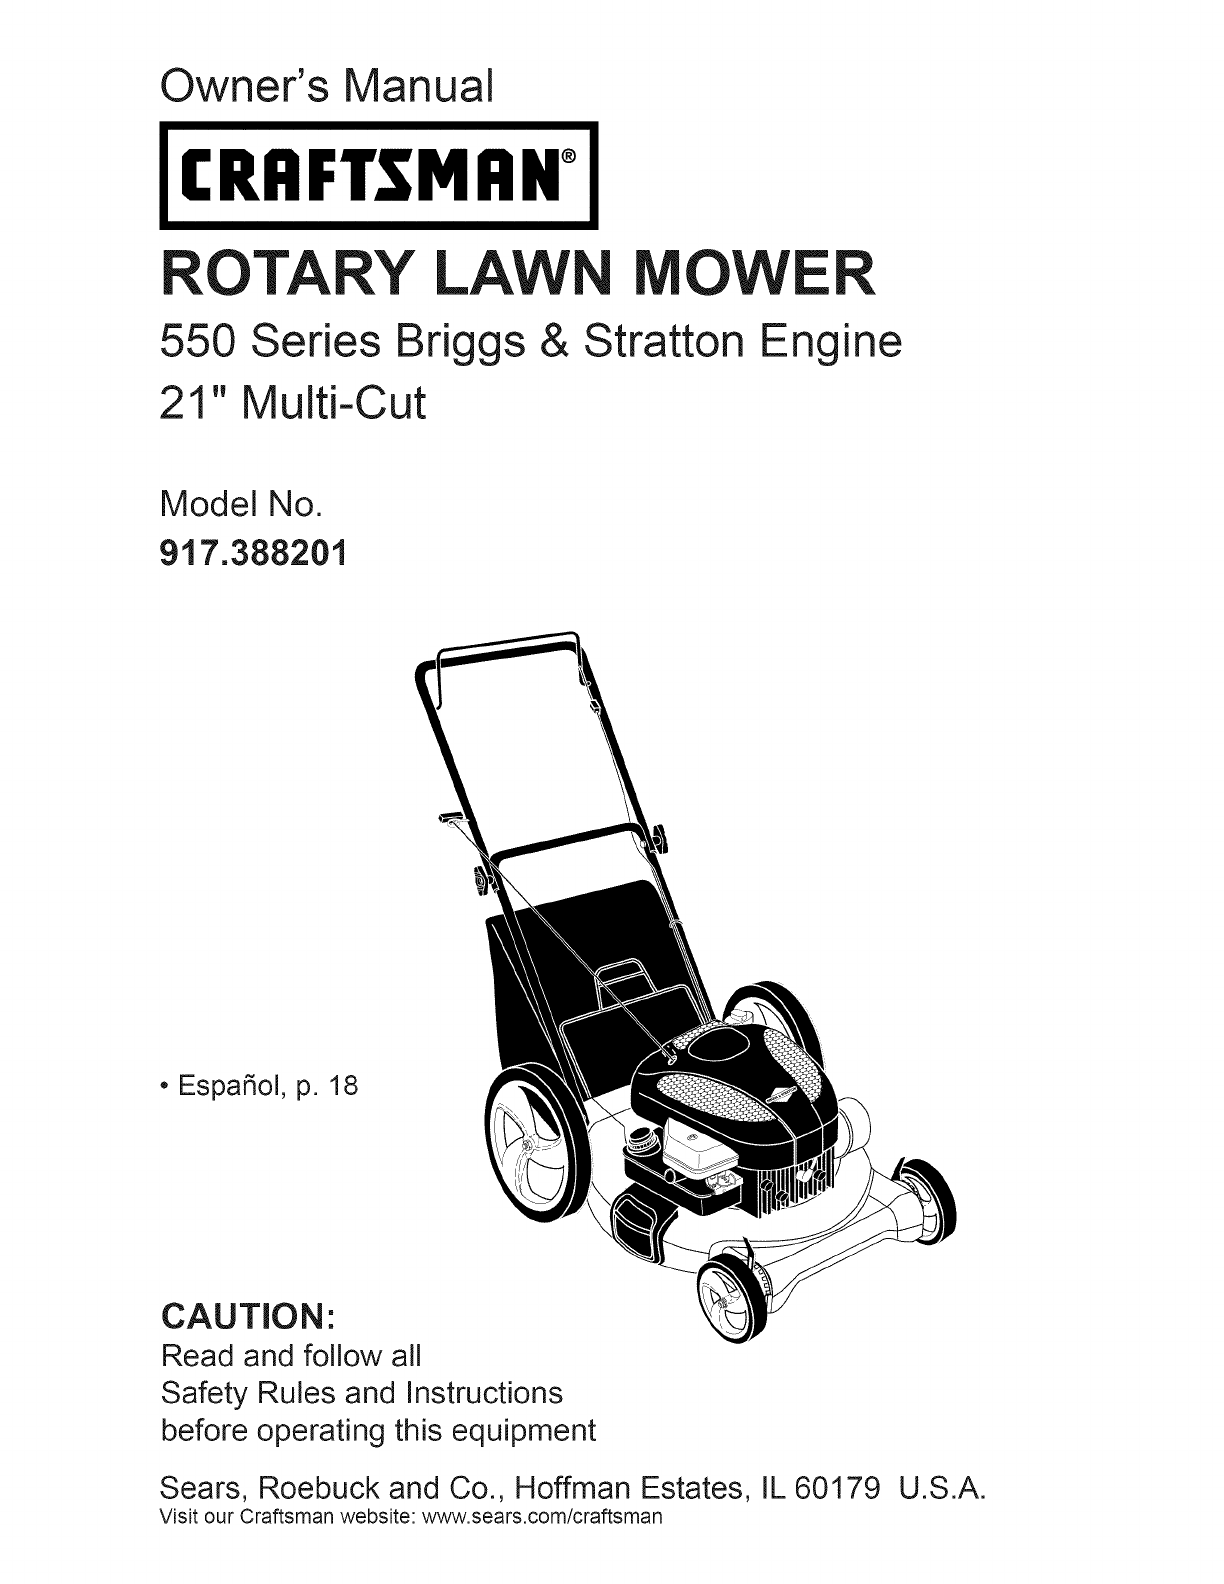 Craftsman Lawn Mower 917.388201 User Guide